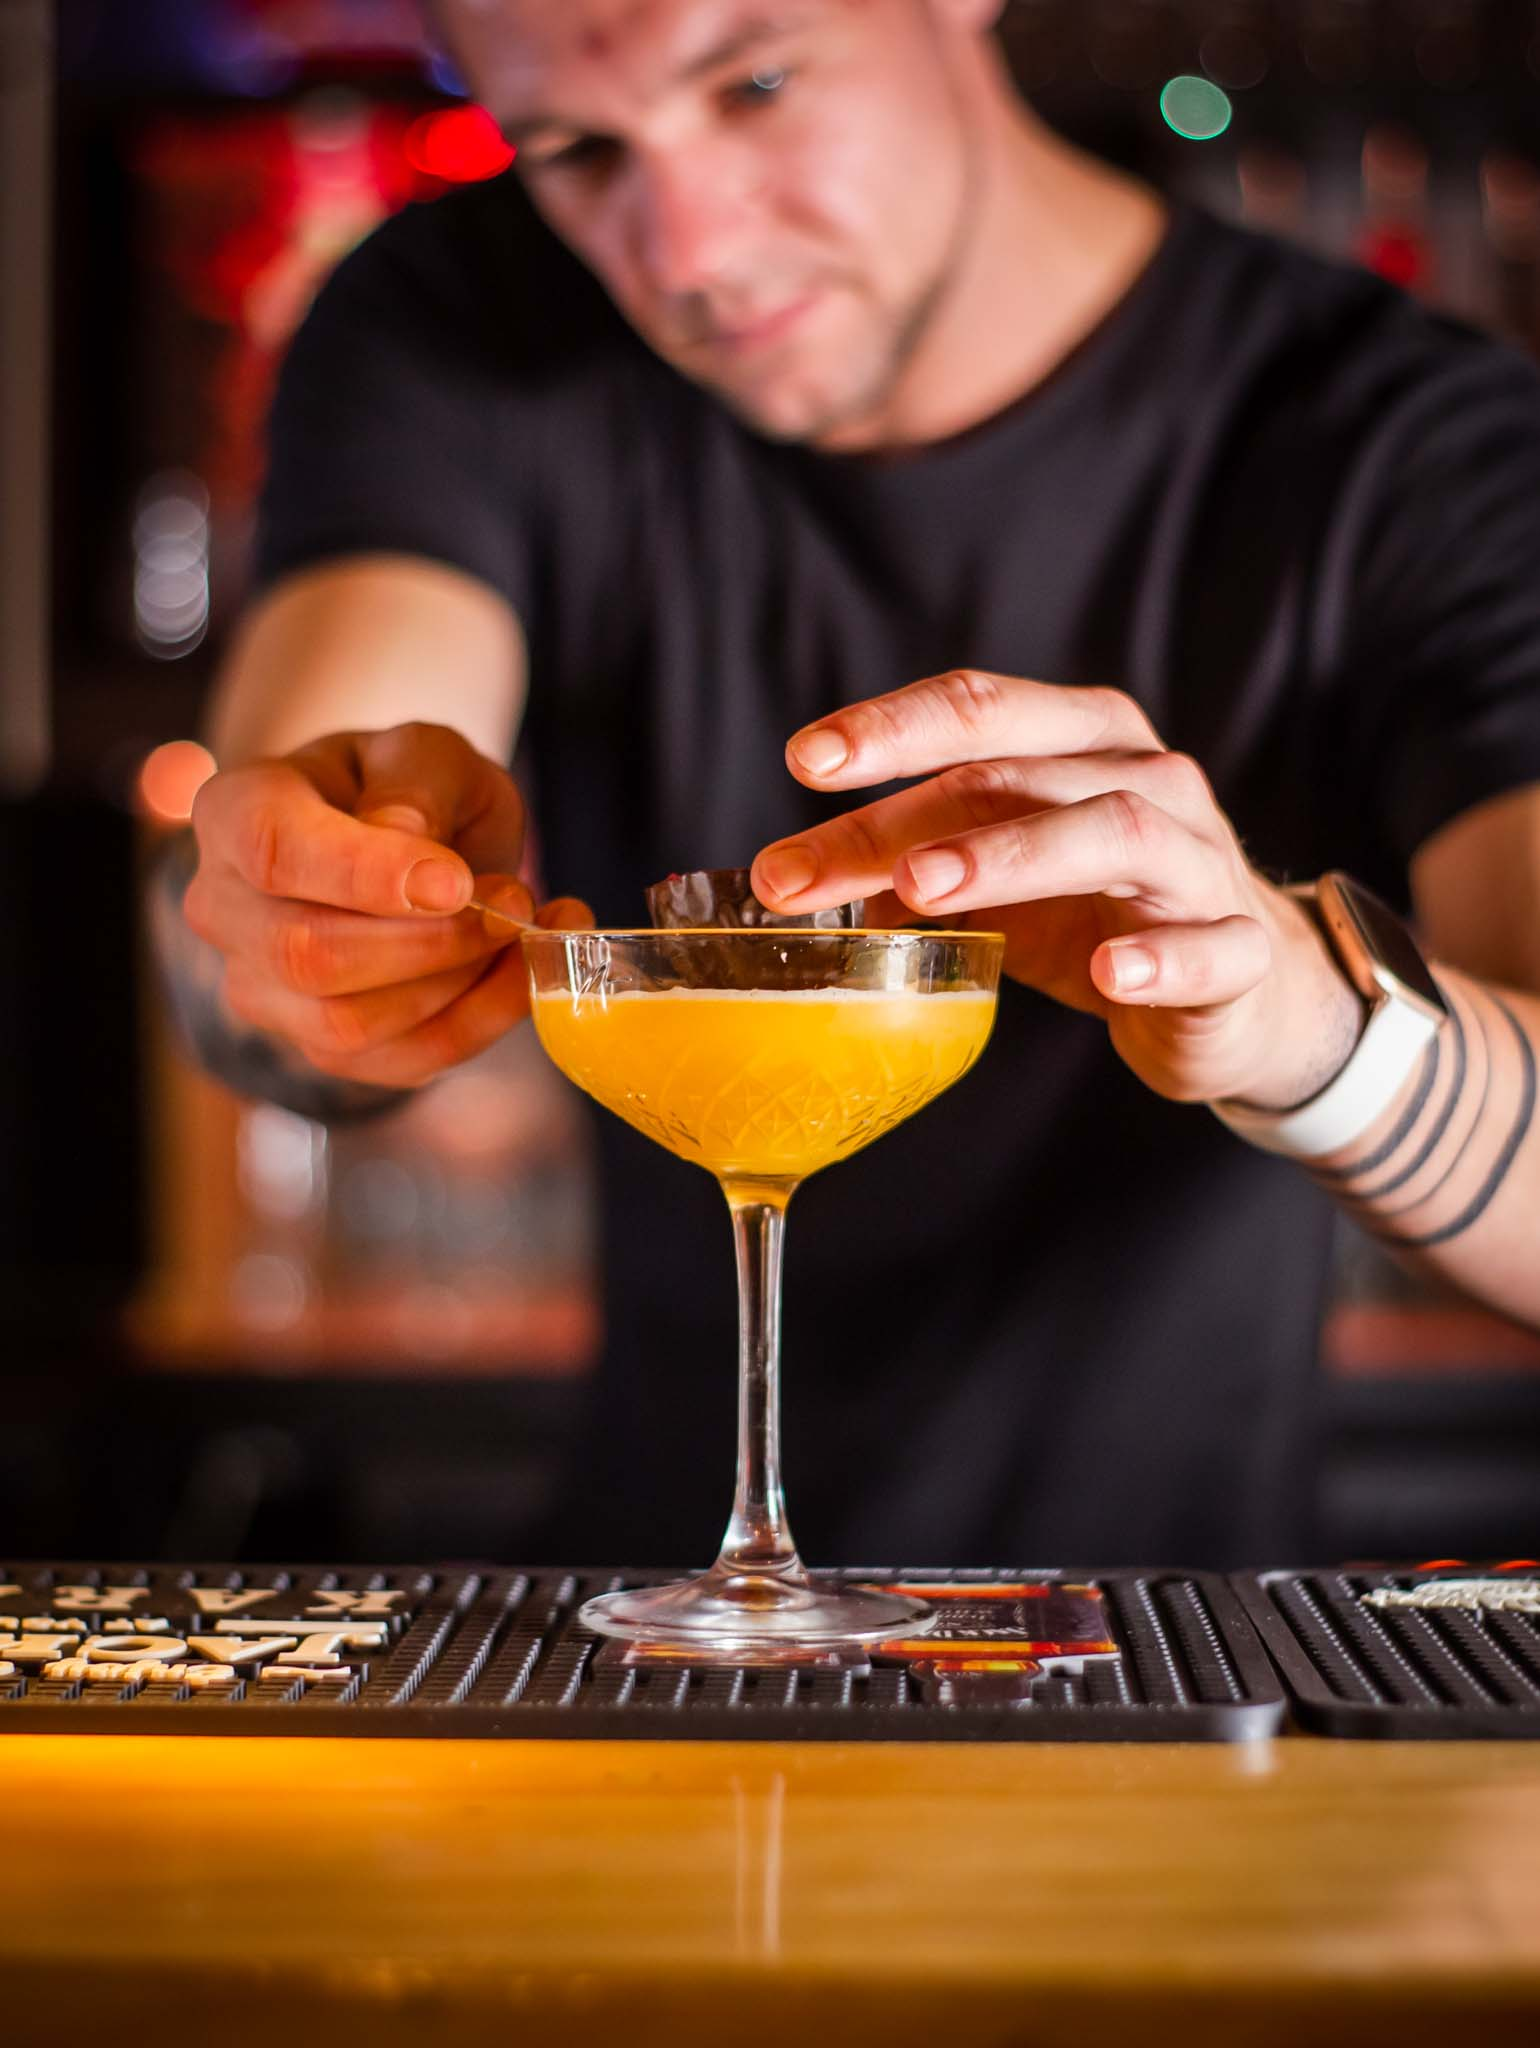 Bartender finishing cocktail in a bar